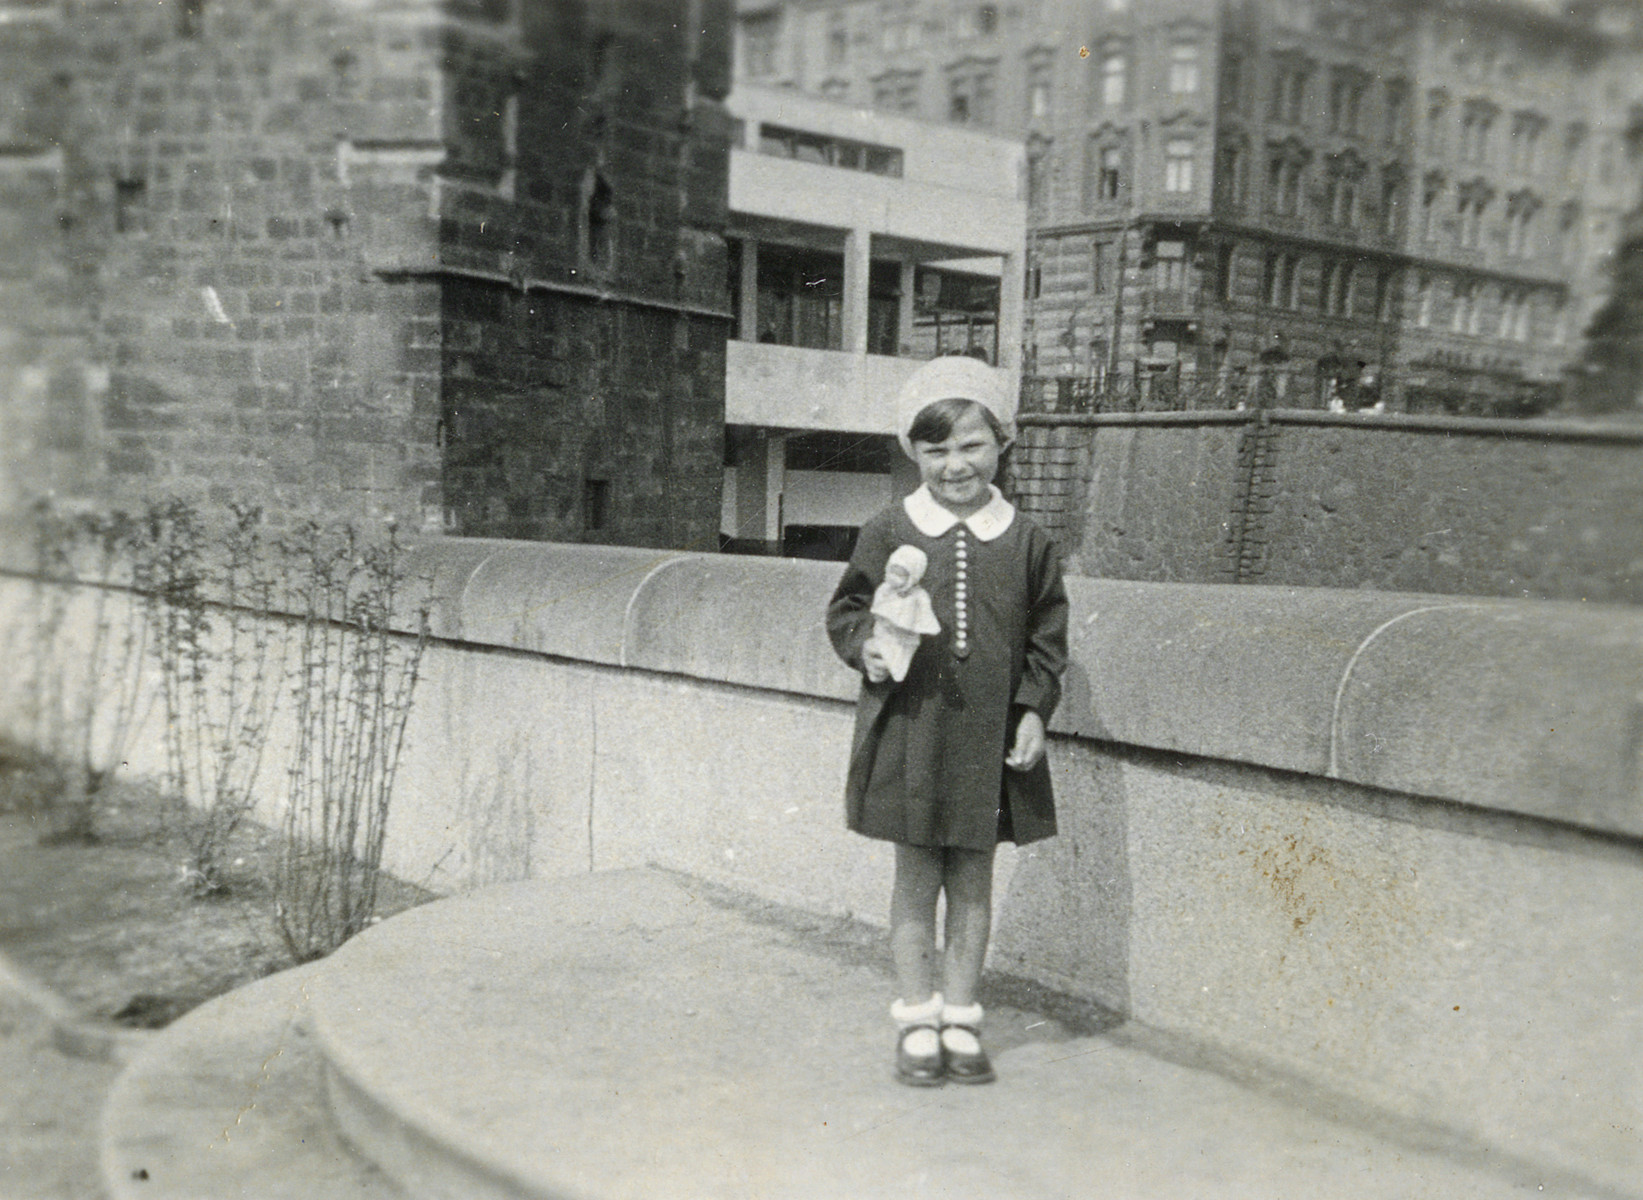 Hana Lustig poses on a sidewalk holding her doll.